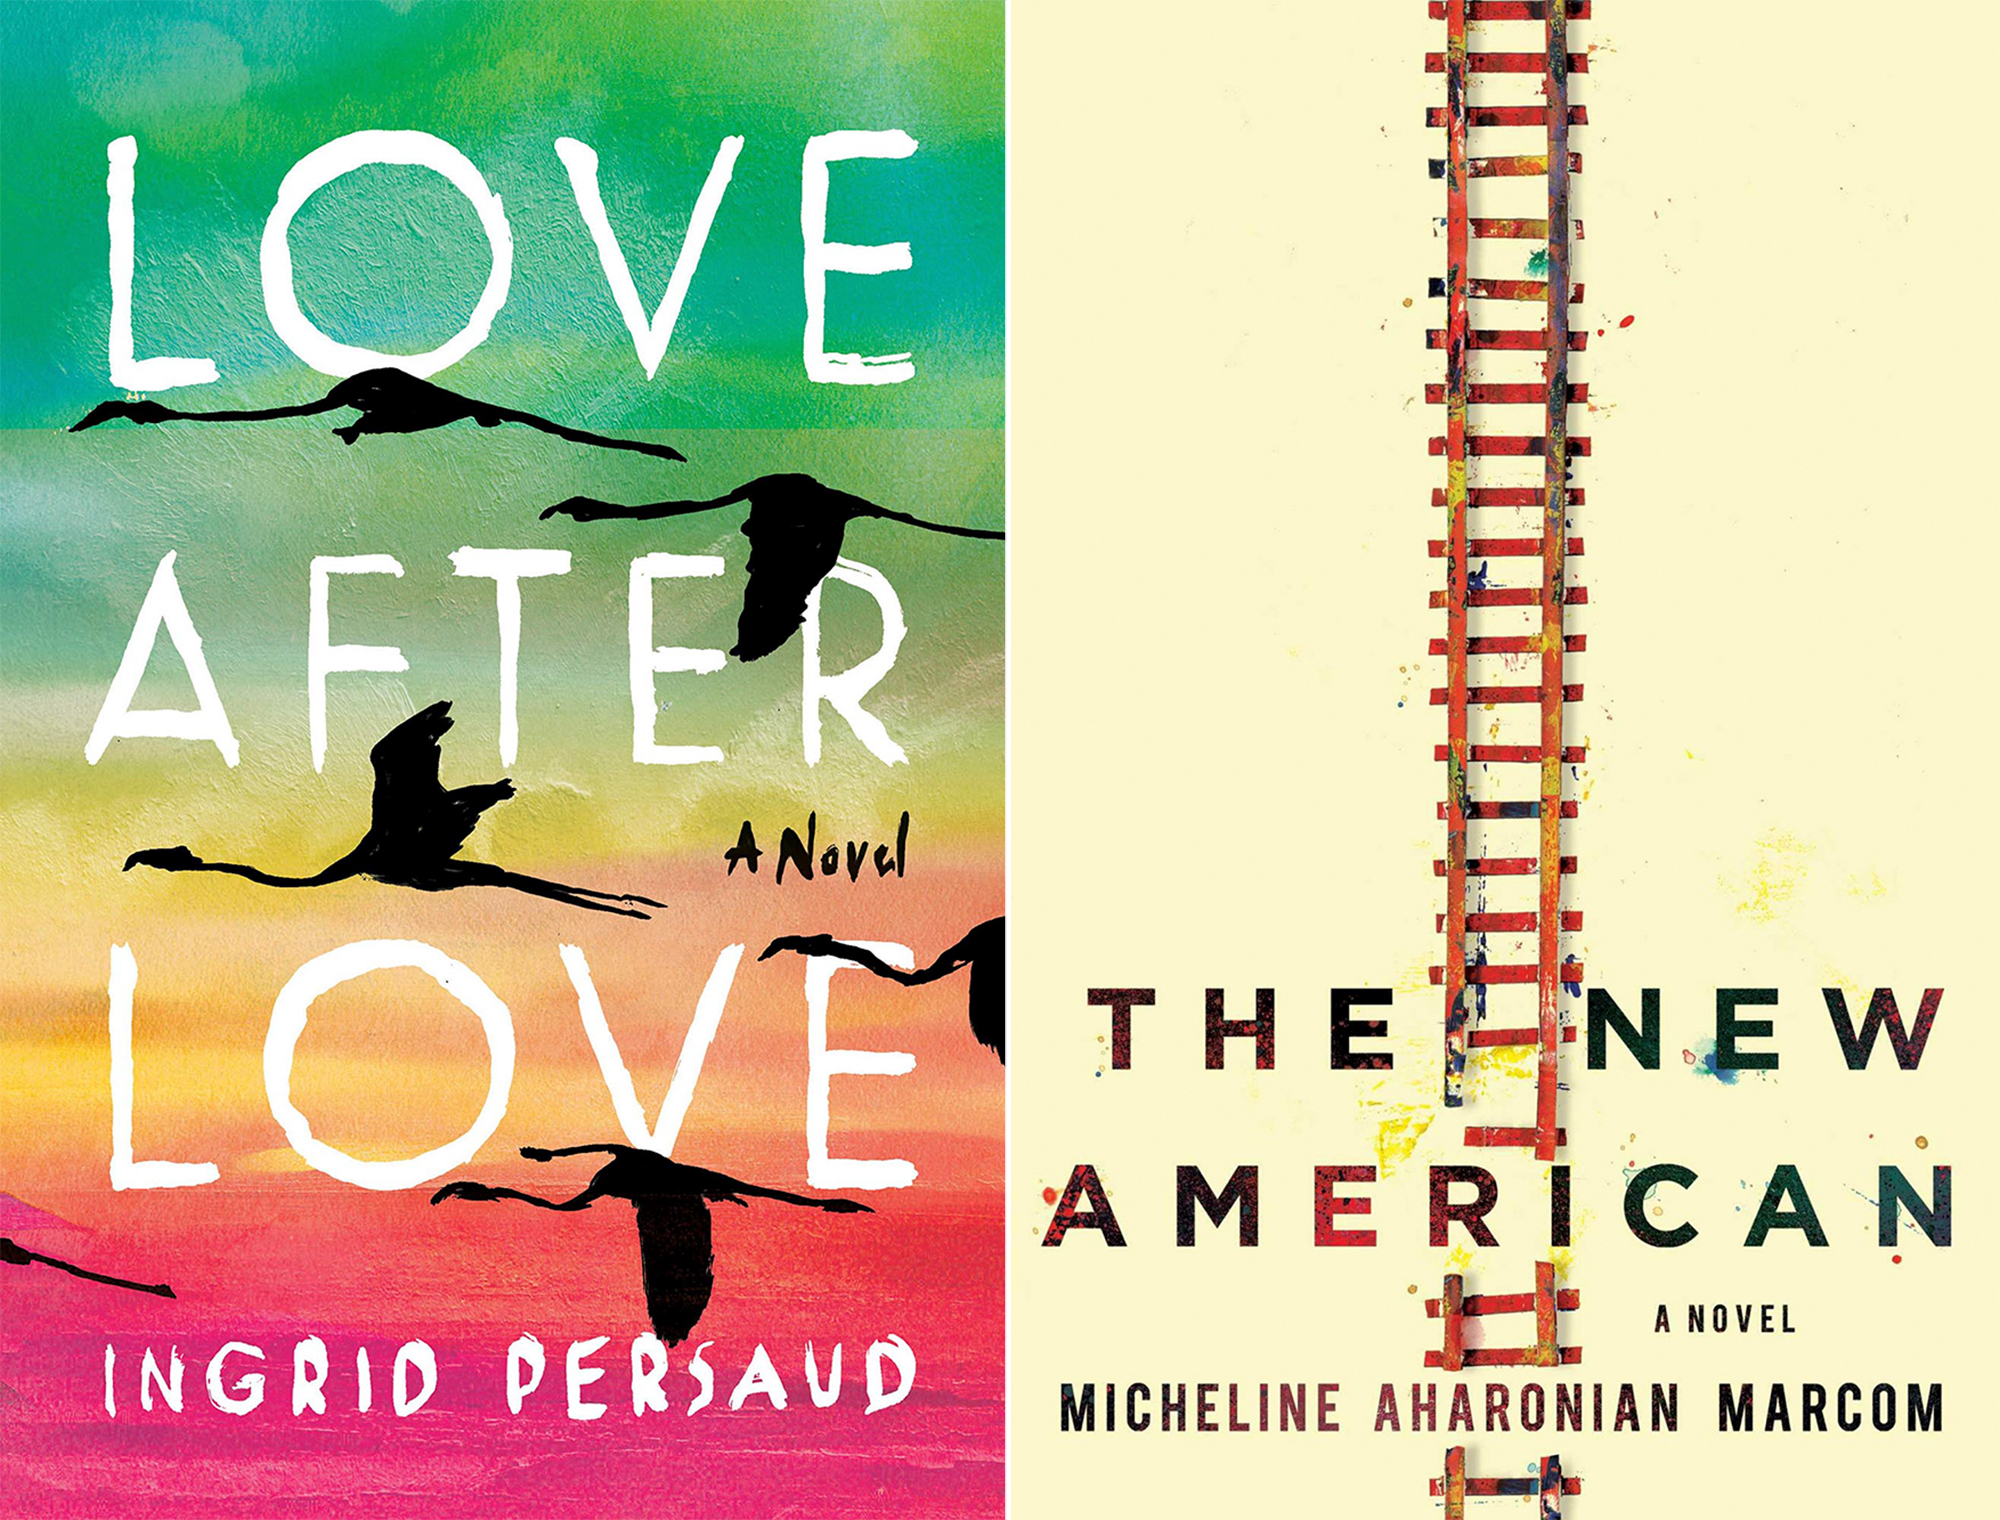 Love After Love, The New American